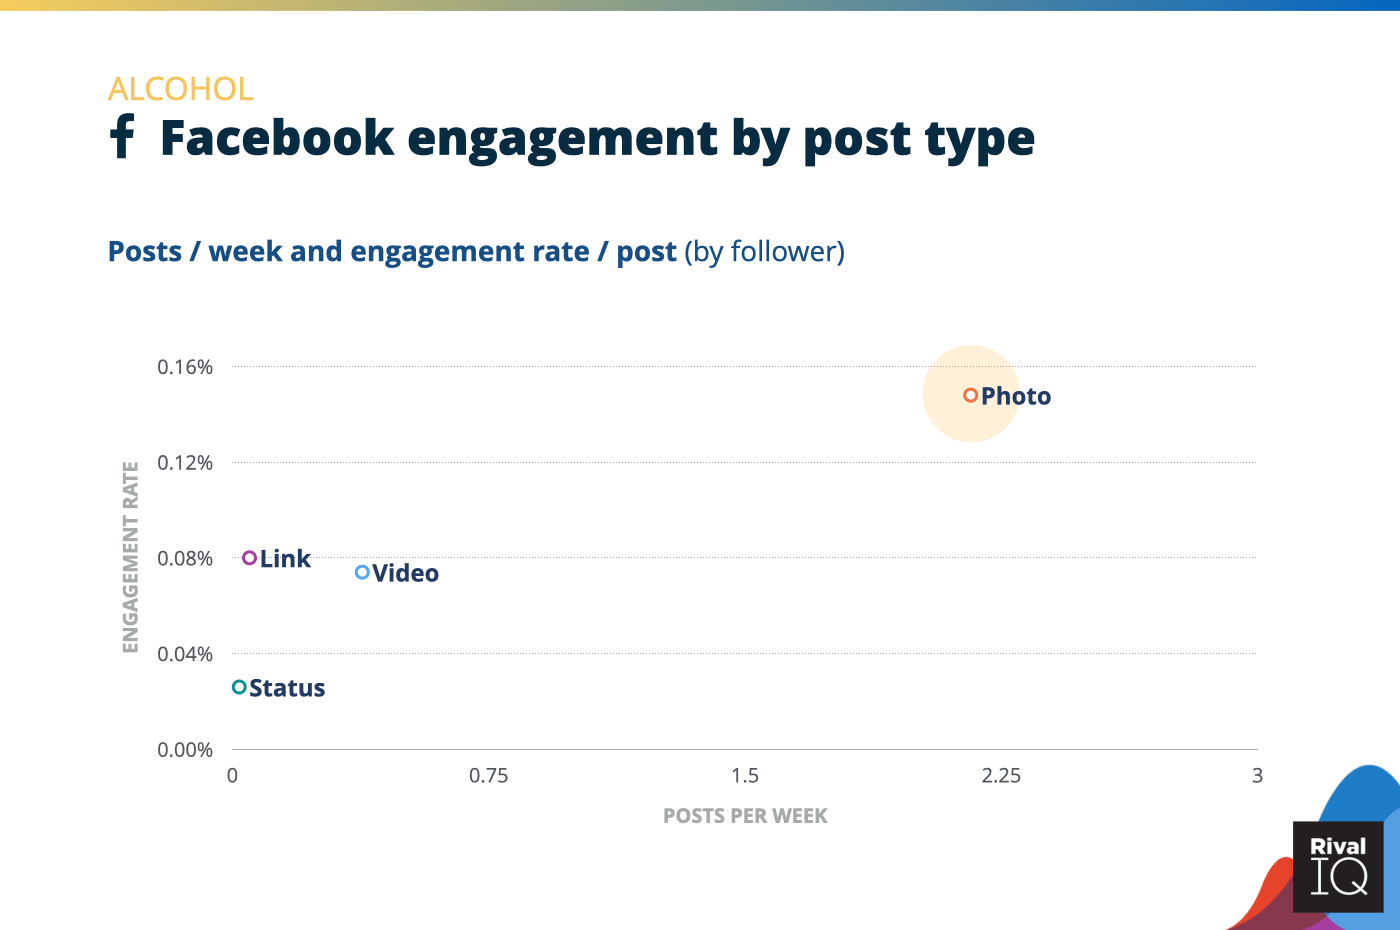 Chart of Facebook posts per week and engagement rate by post type, Alcohol